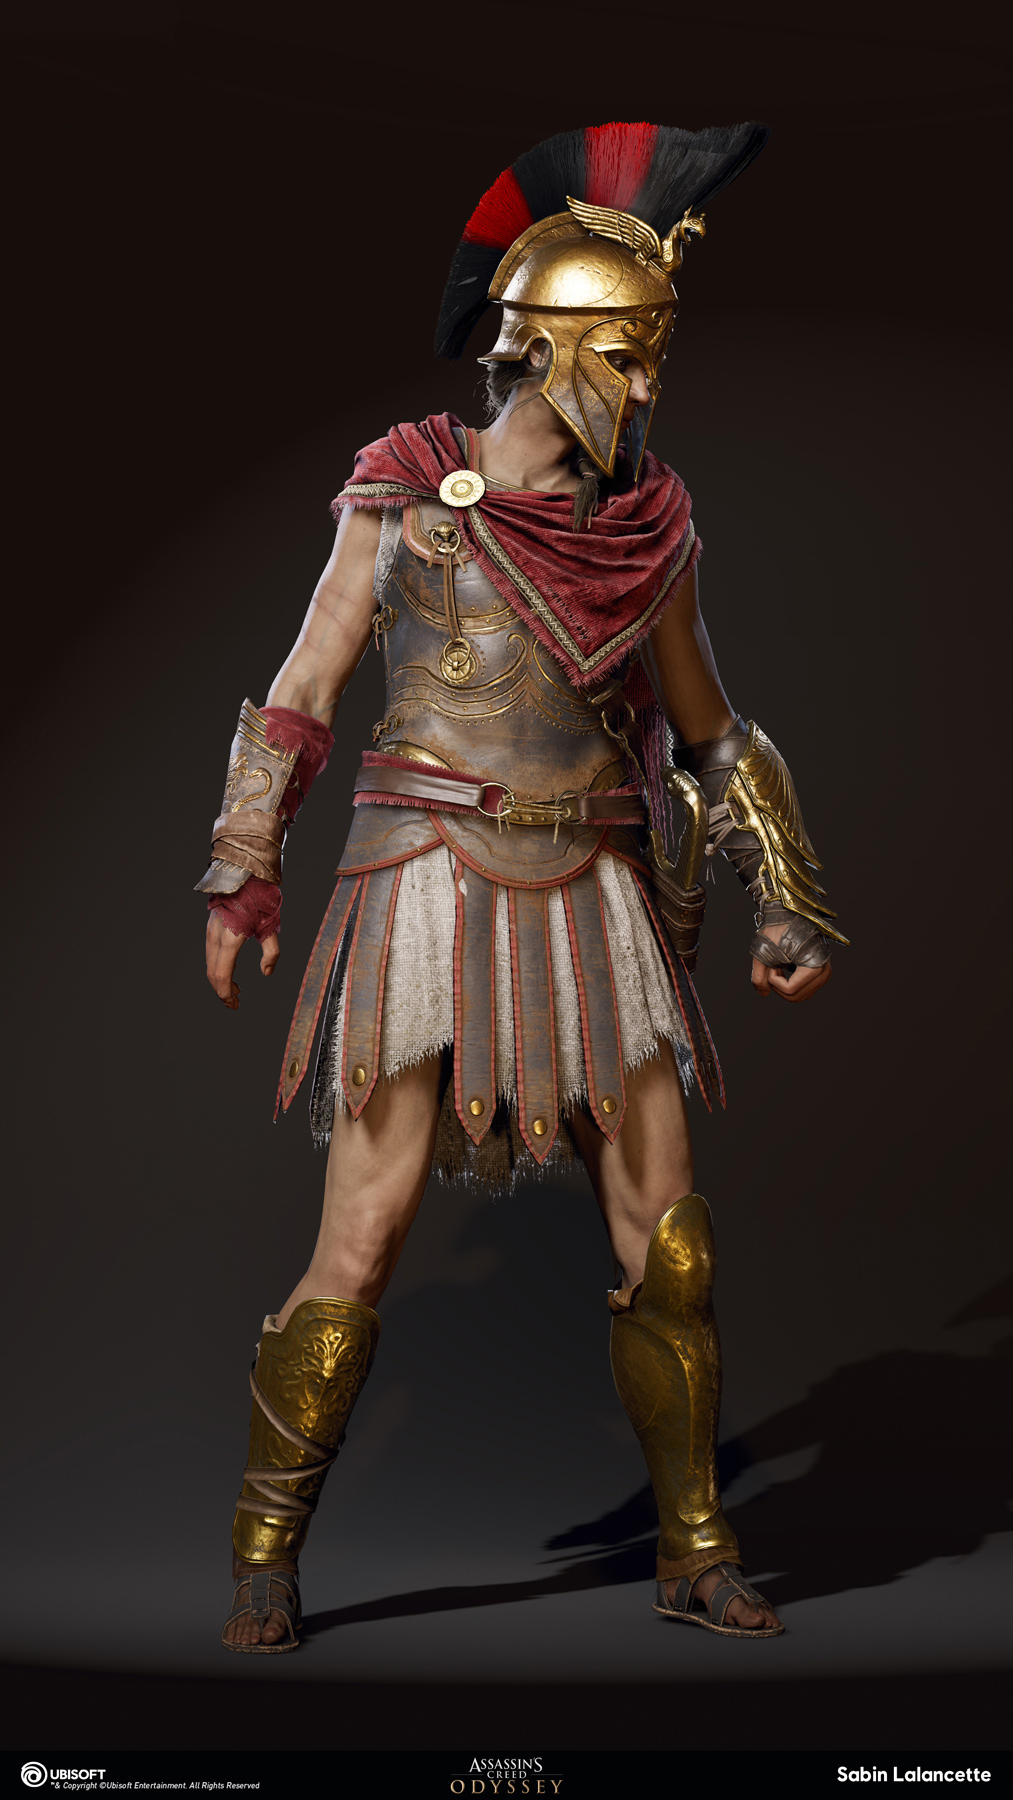 Assassin S Creed Odyssey Character Team Post Zbrushcentral